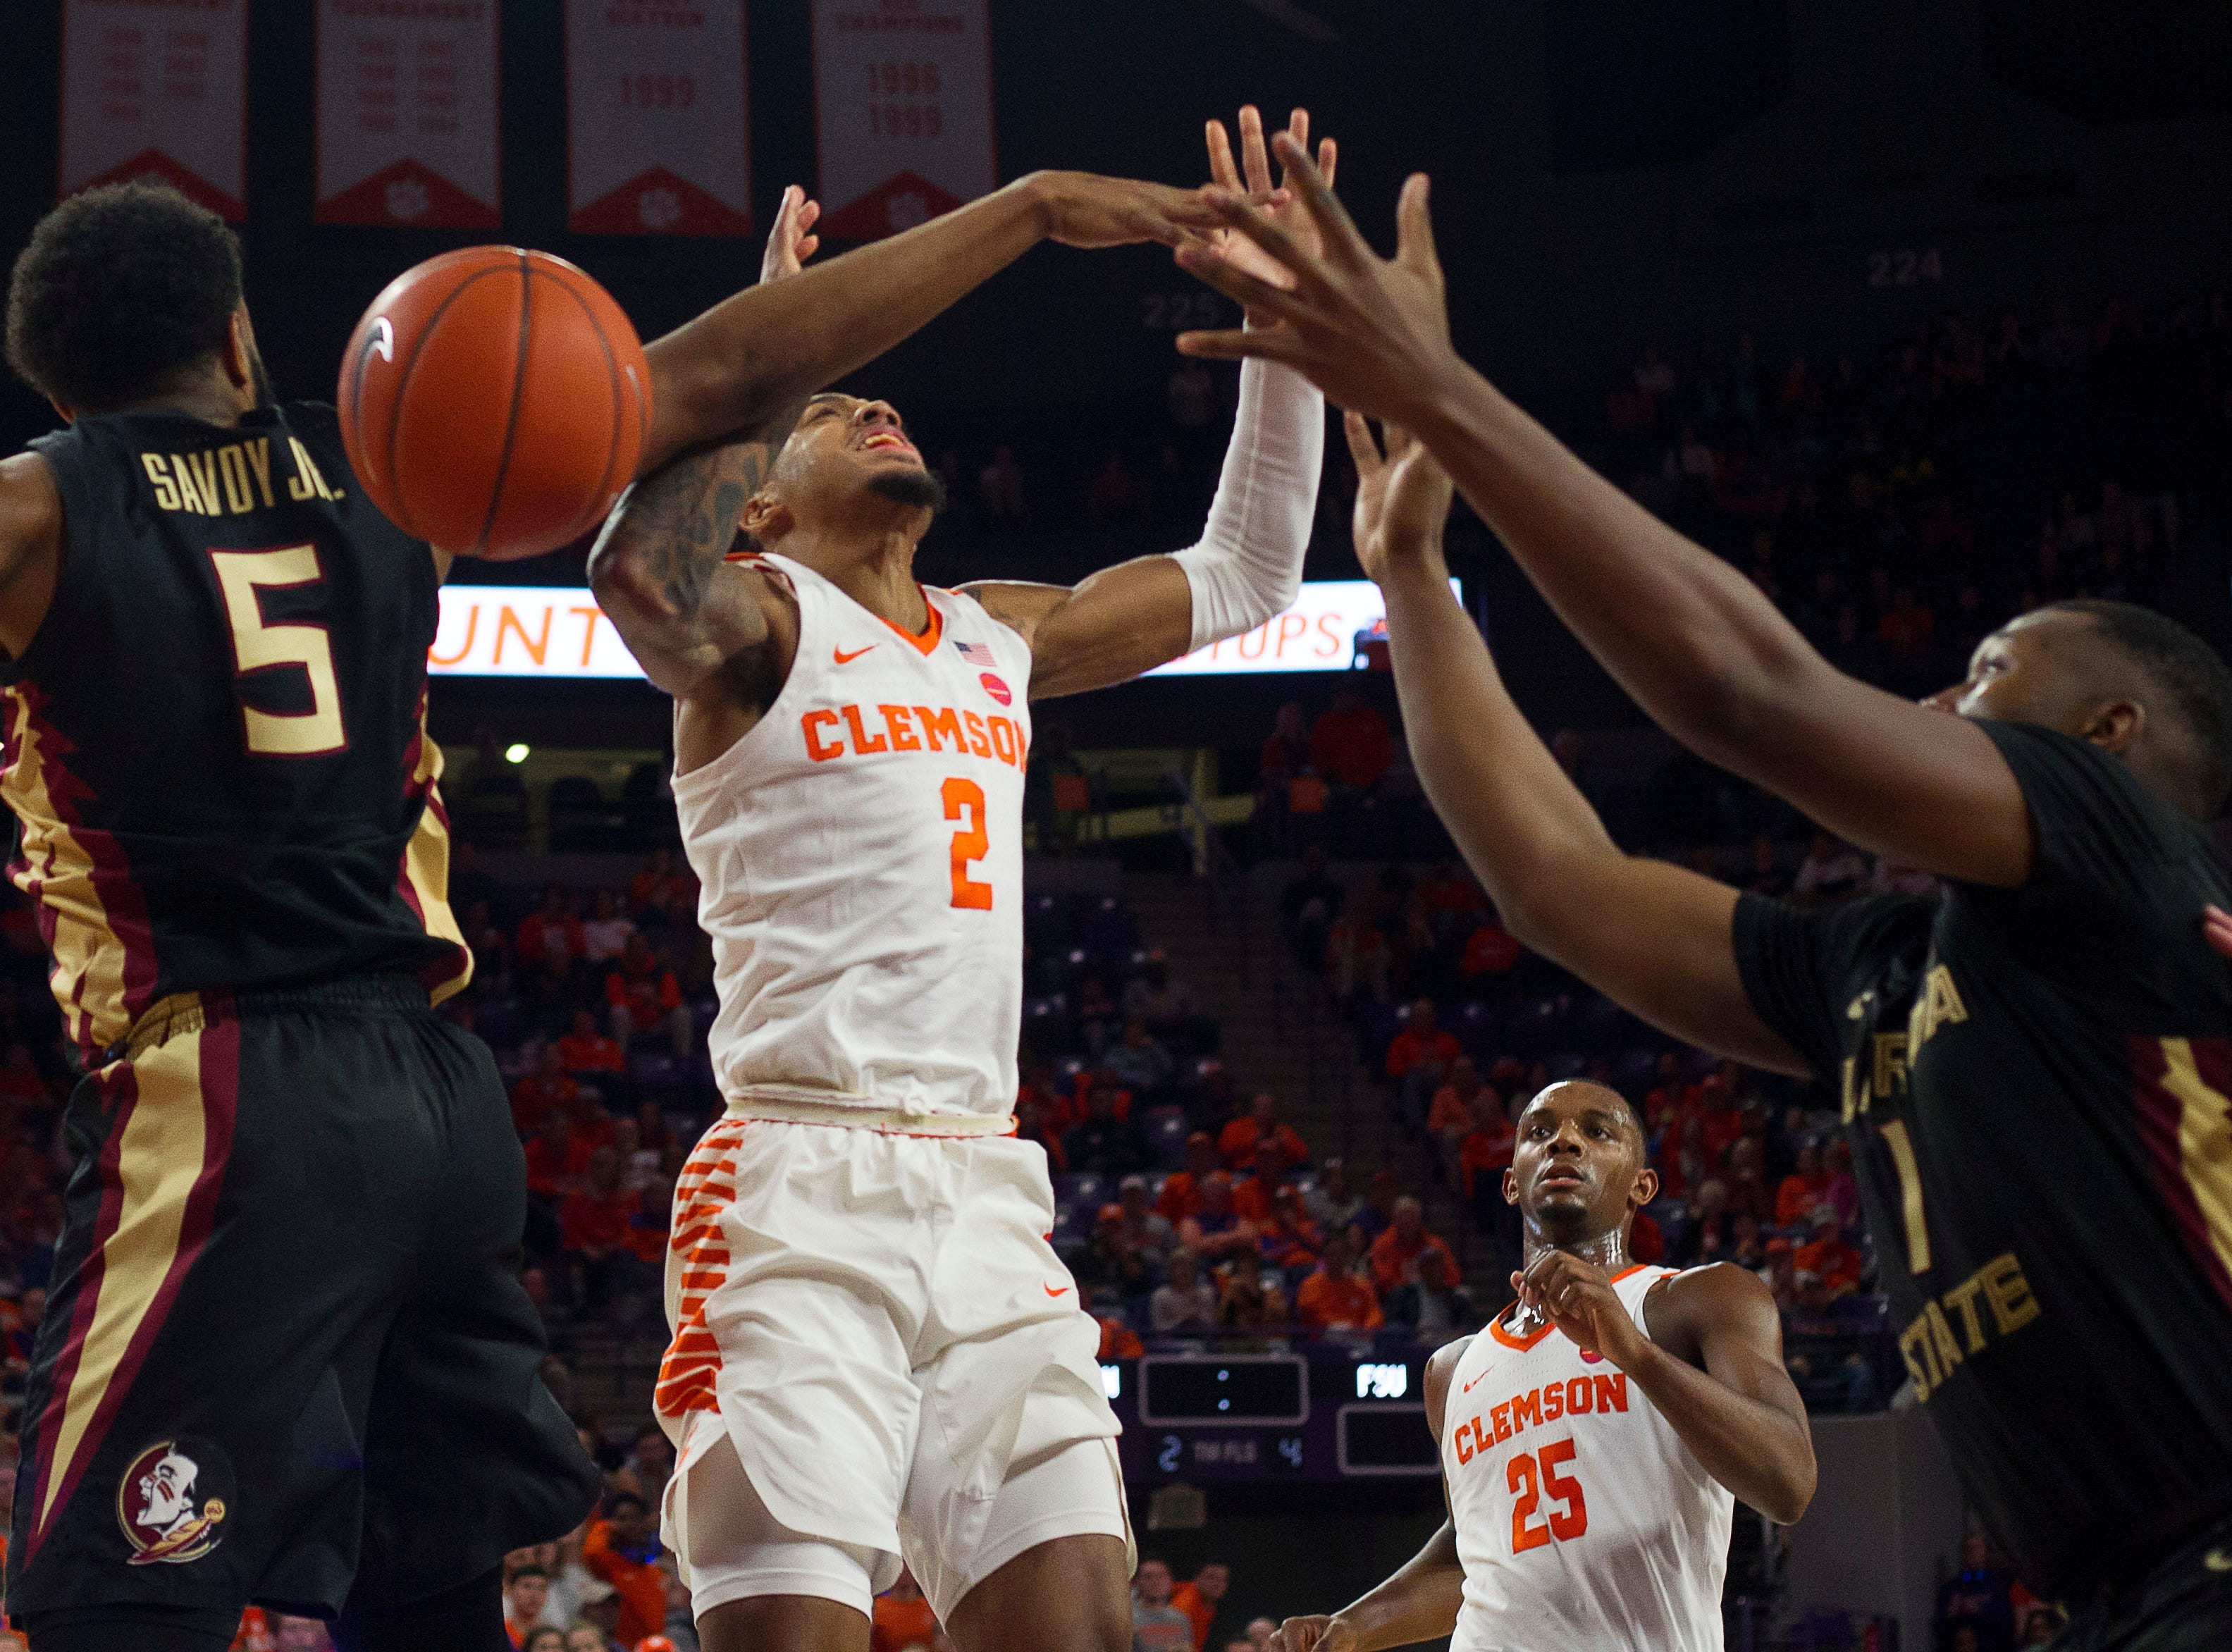 Feb 19, 2019; Clemson, SC, USA; Clemson Tigers guard Marcquise Reed (2) attempts the layup while being defended by Florida State Seminoles guard PJ Savoy (5) during the second half at Littlejohn Coliseum. Seminoles won 77-64. Mandatory Credit: Joshua S. Kelly-USA TODAY Sports